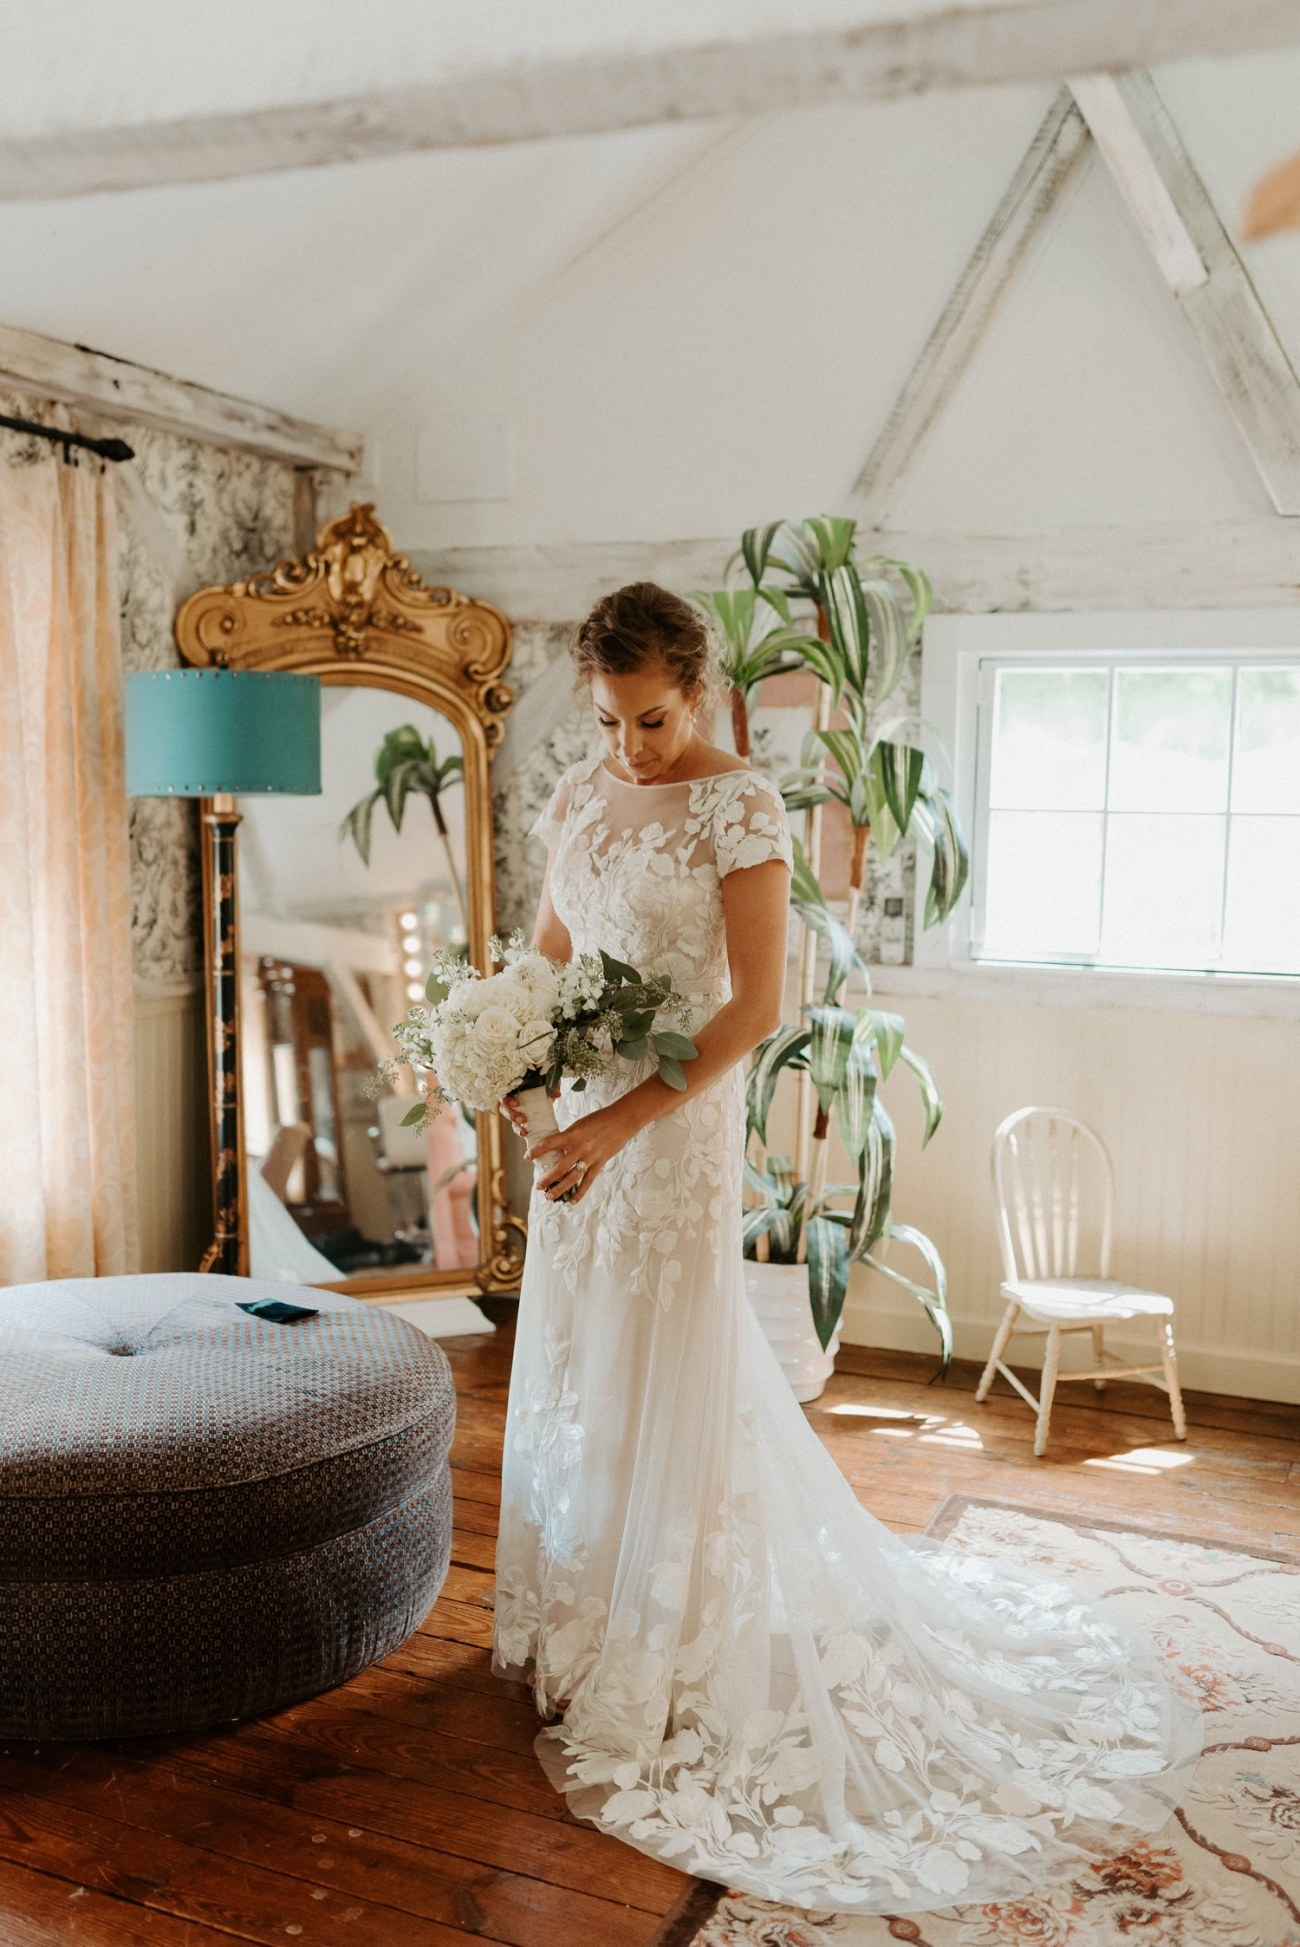 Bride getting ready in bridal suite at Jacks Barn Oxford New Jersey Wedding Venue. New Jersey Wedding Photographer NJ Wedding Venue Rustic Barn Wedding Anais Possamai Photography